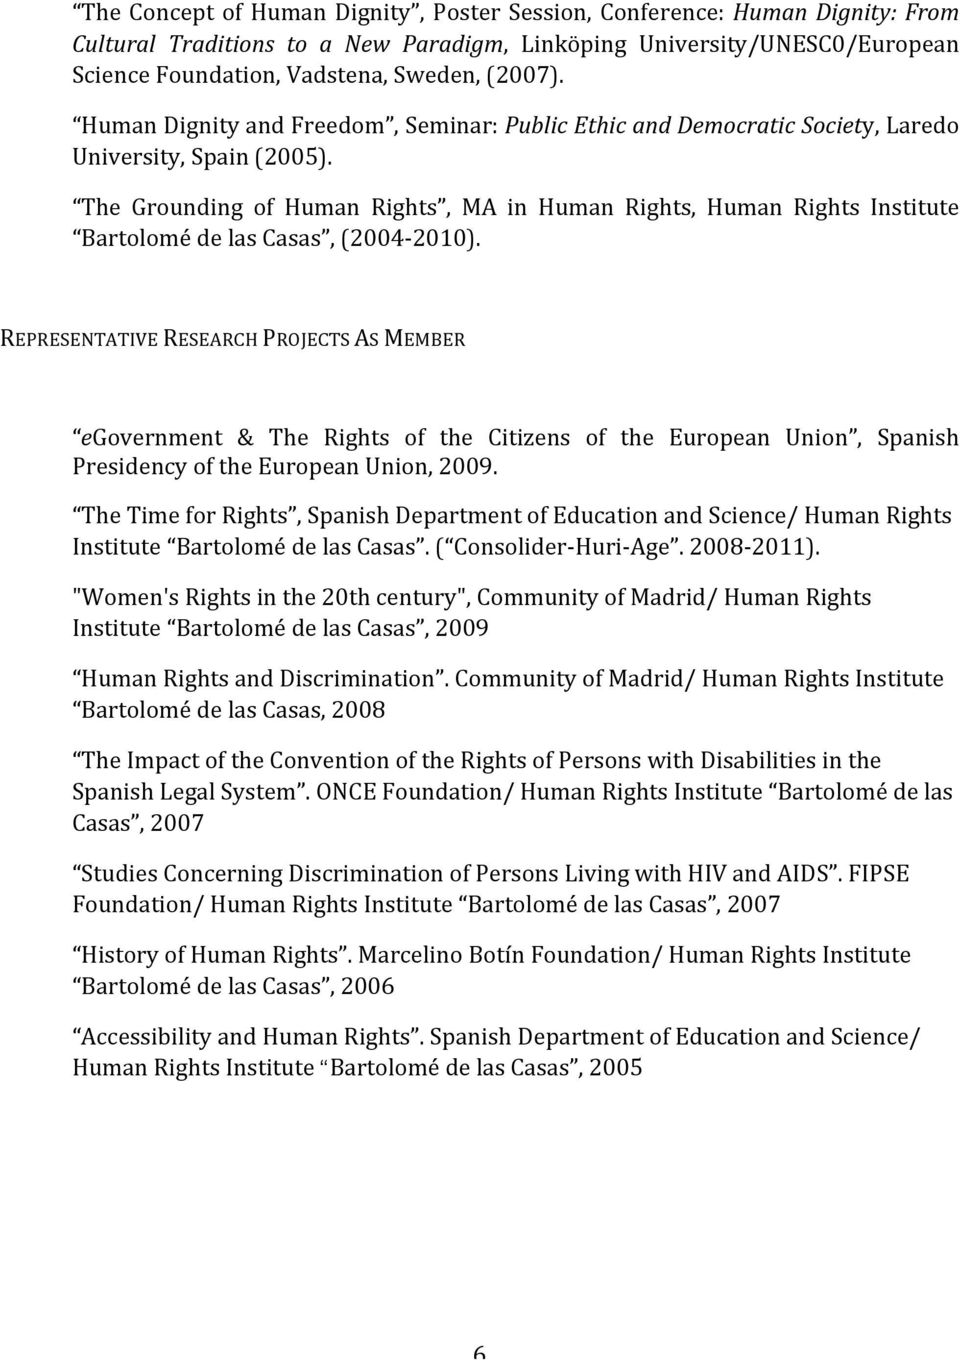 The Grounding of Human Rights, MA in Human Rights, Human Rights Institute Bartolomé de las Casas, (2004-2010).